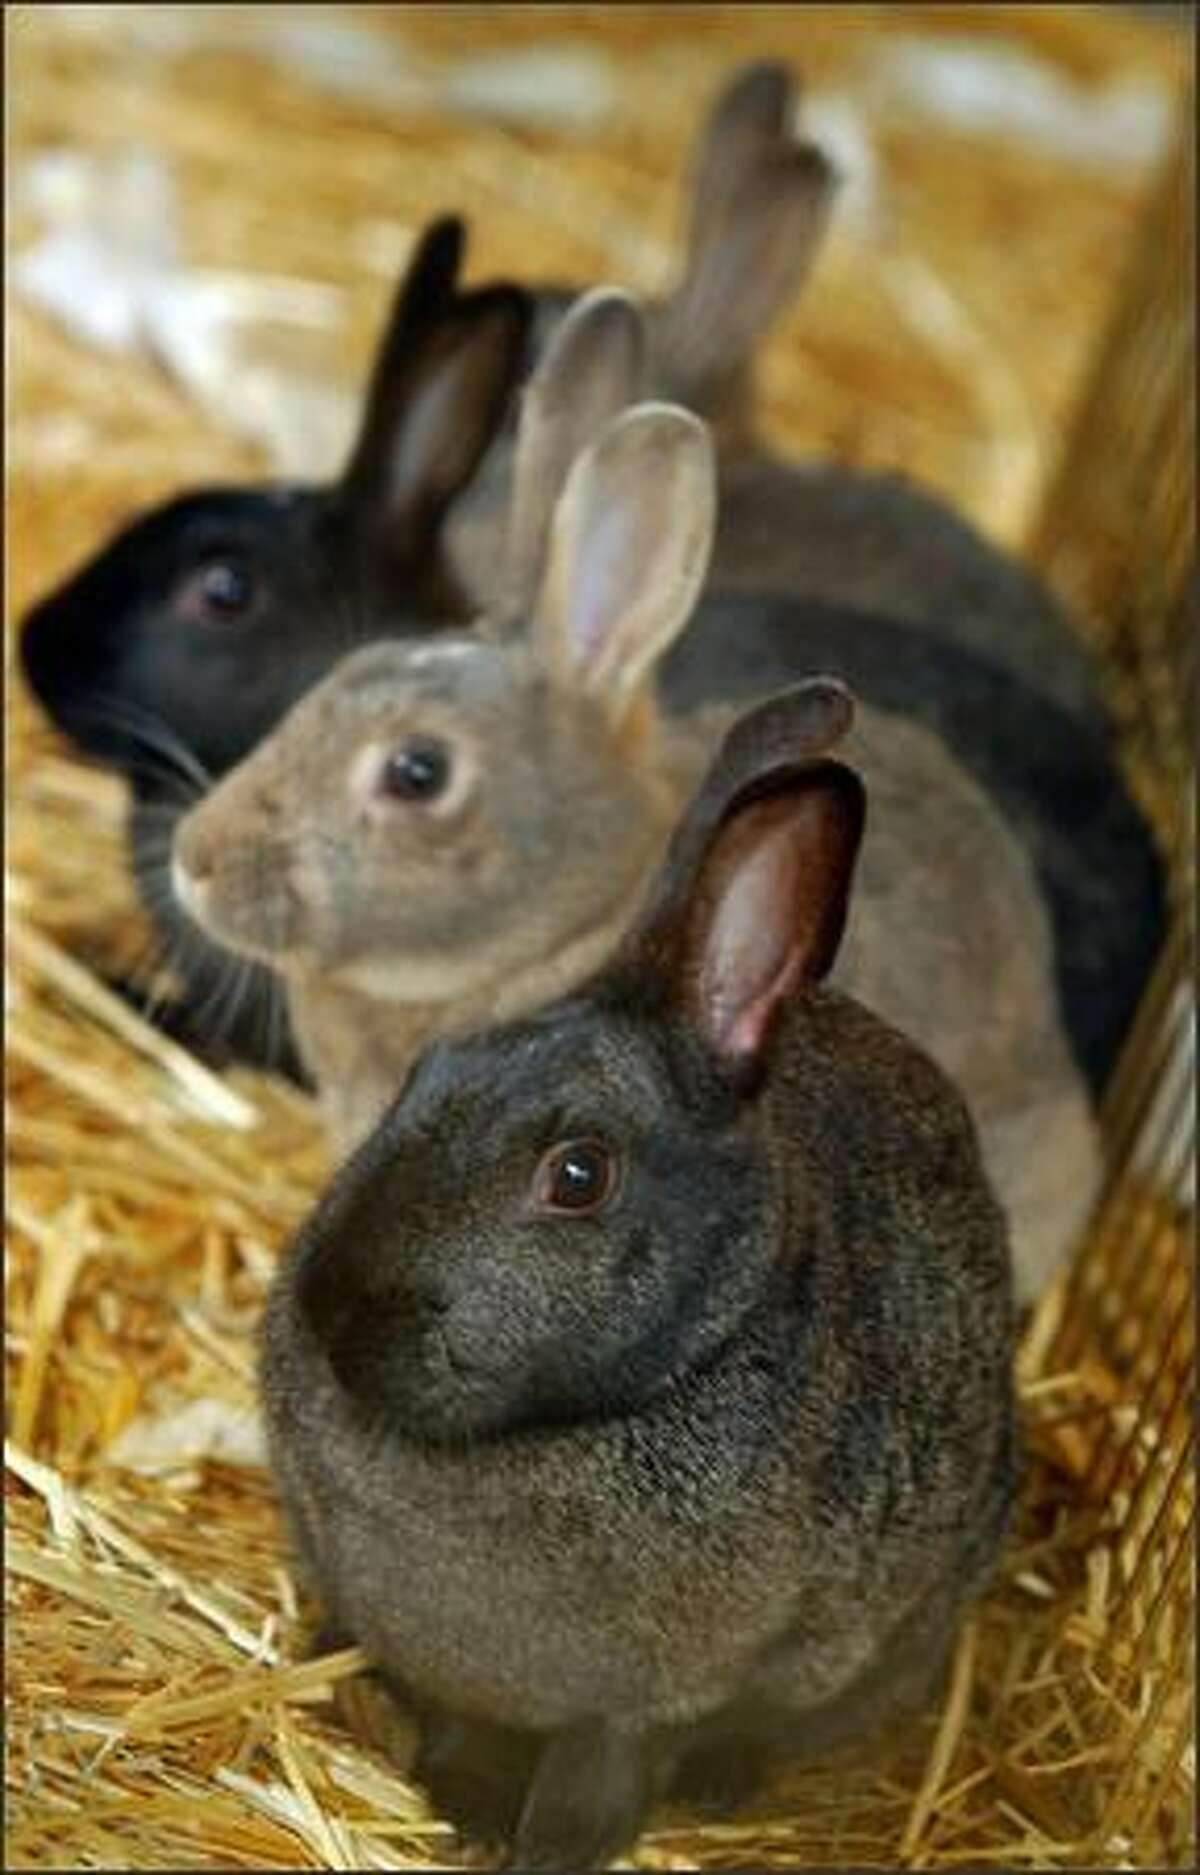 Four Woodland Park female rabbits await their fate in a holding pen at Magnuson Park after they were captured Tuesday.